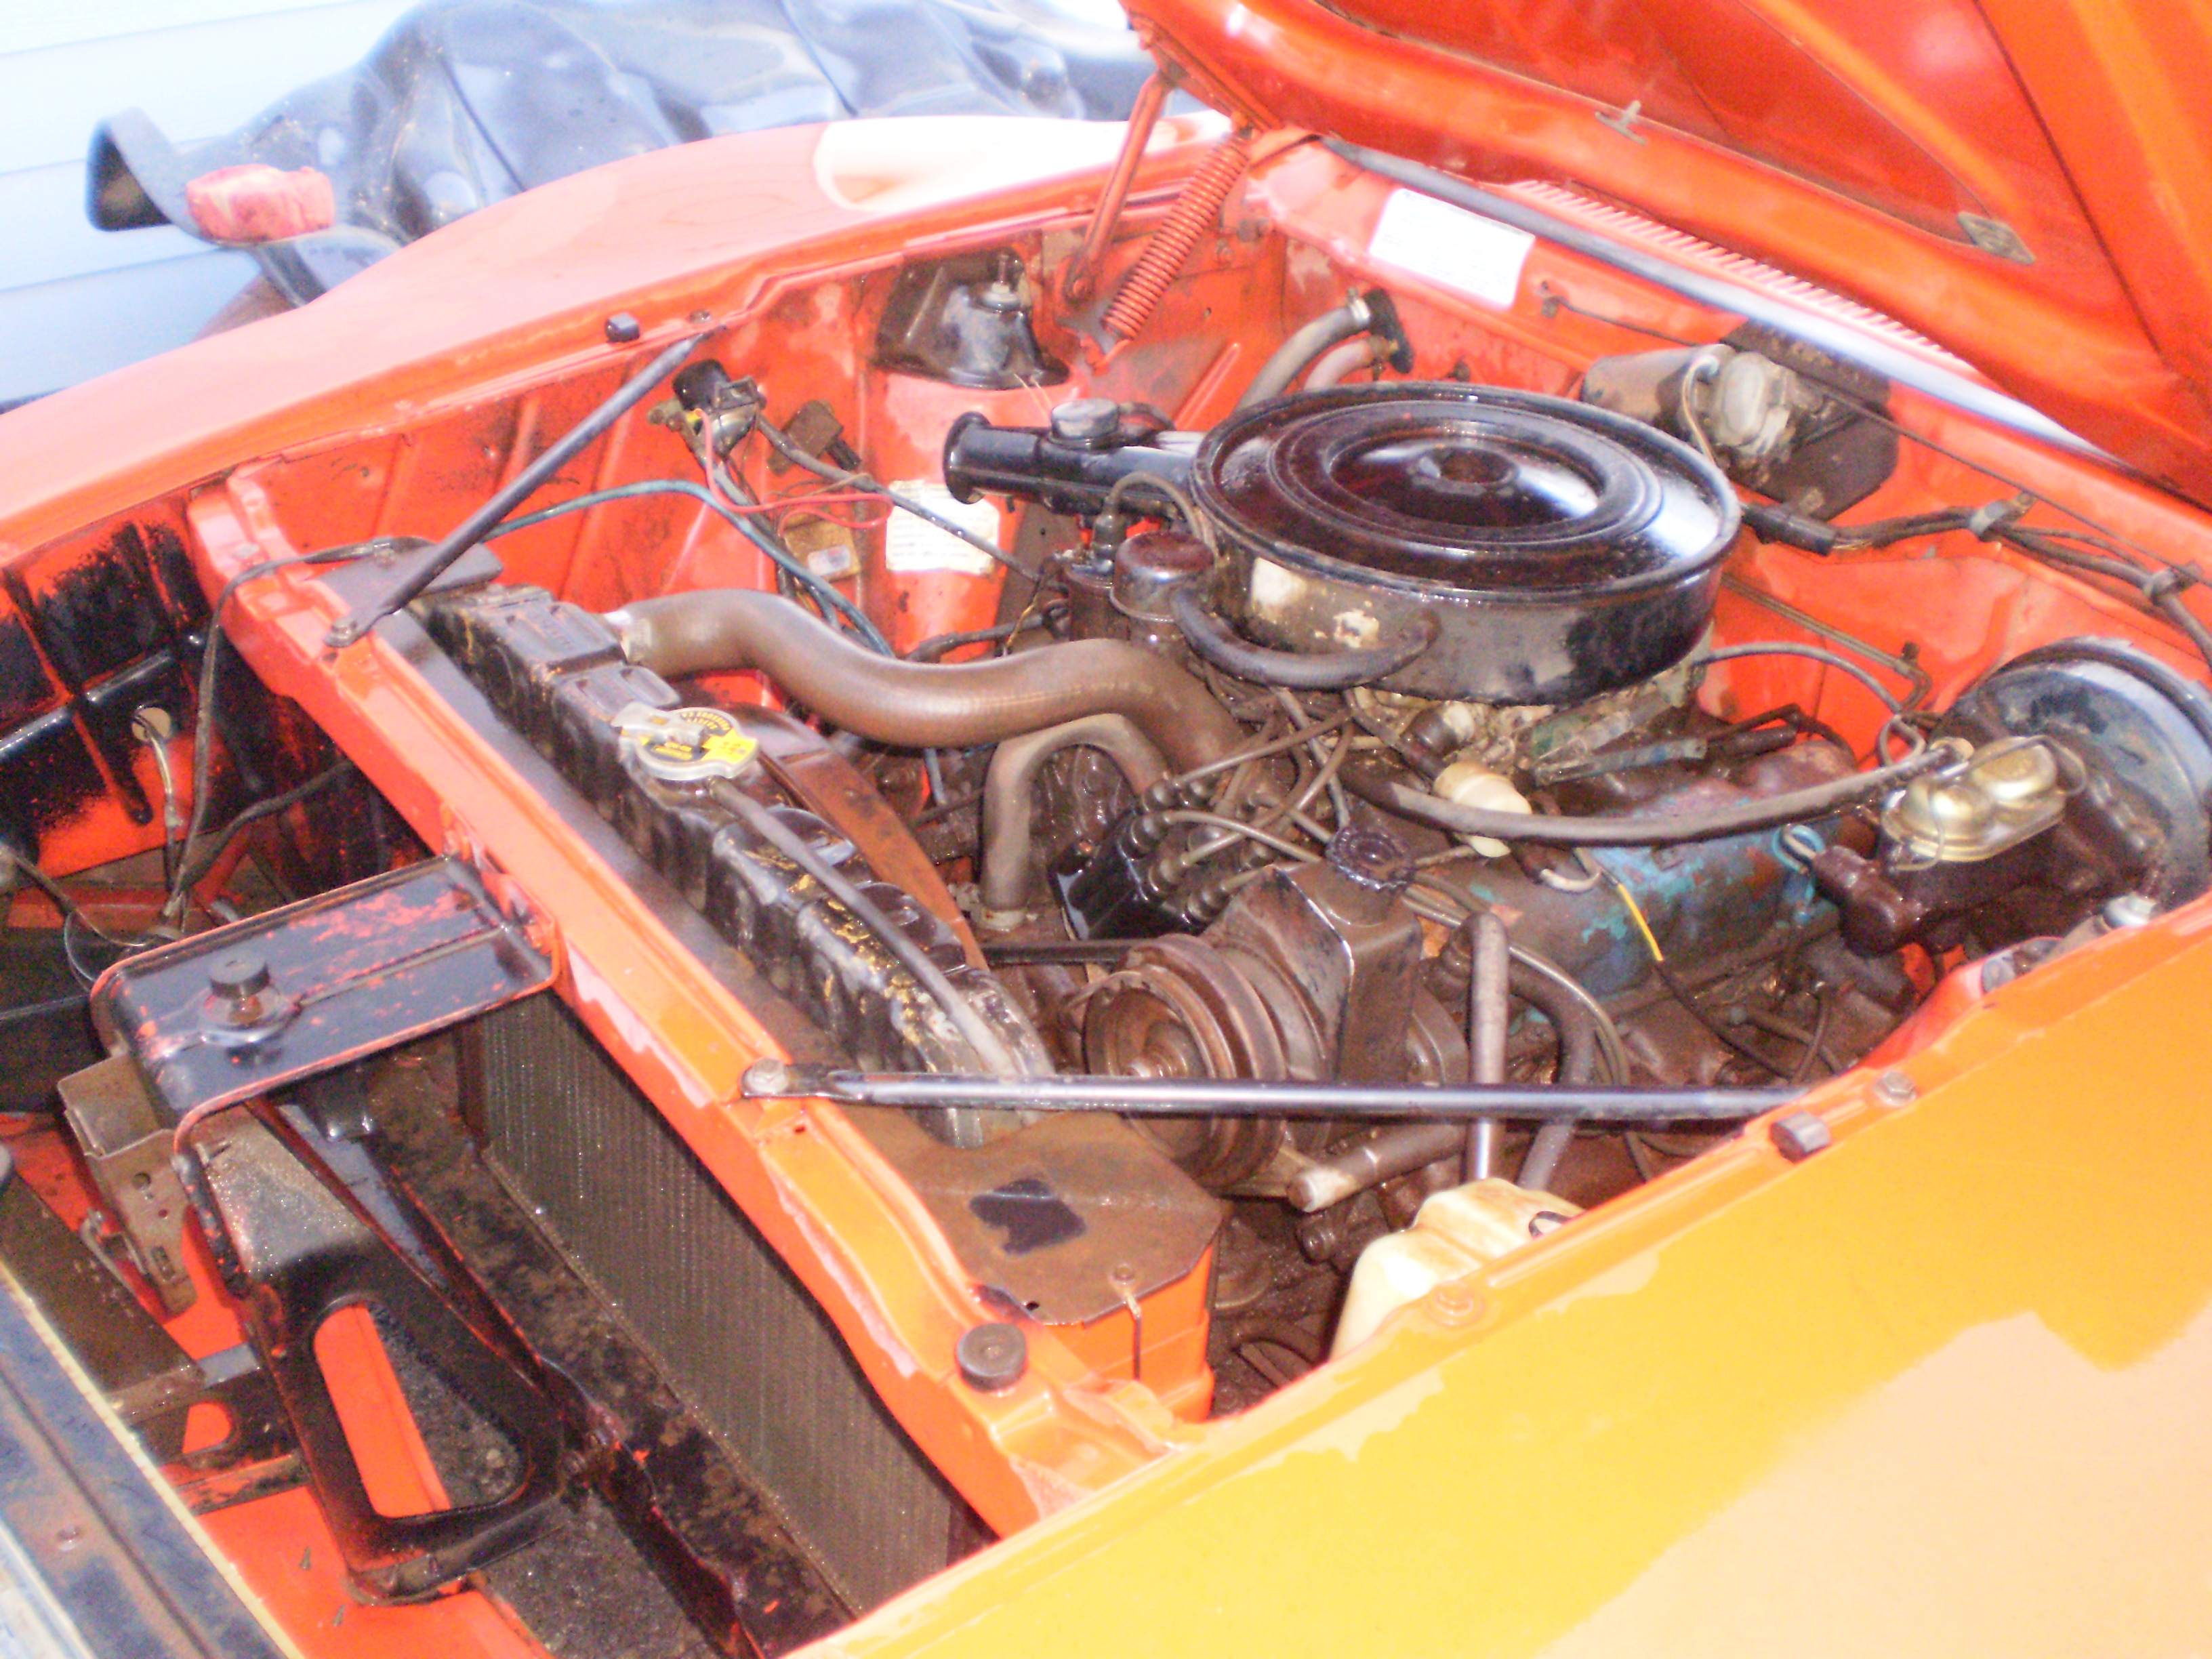 Michaels Amc Javelin Build The Forums 1968 Wiring Diagram First Off Under Hood I Shop Vacd Up All Dirt And Mouse Poo Washed Everything Down No Water Seeped Into Engine Oil Still Looks New